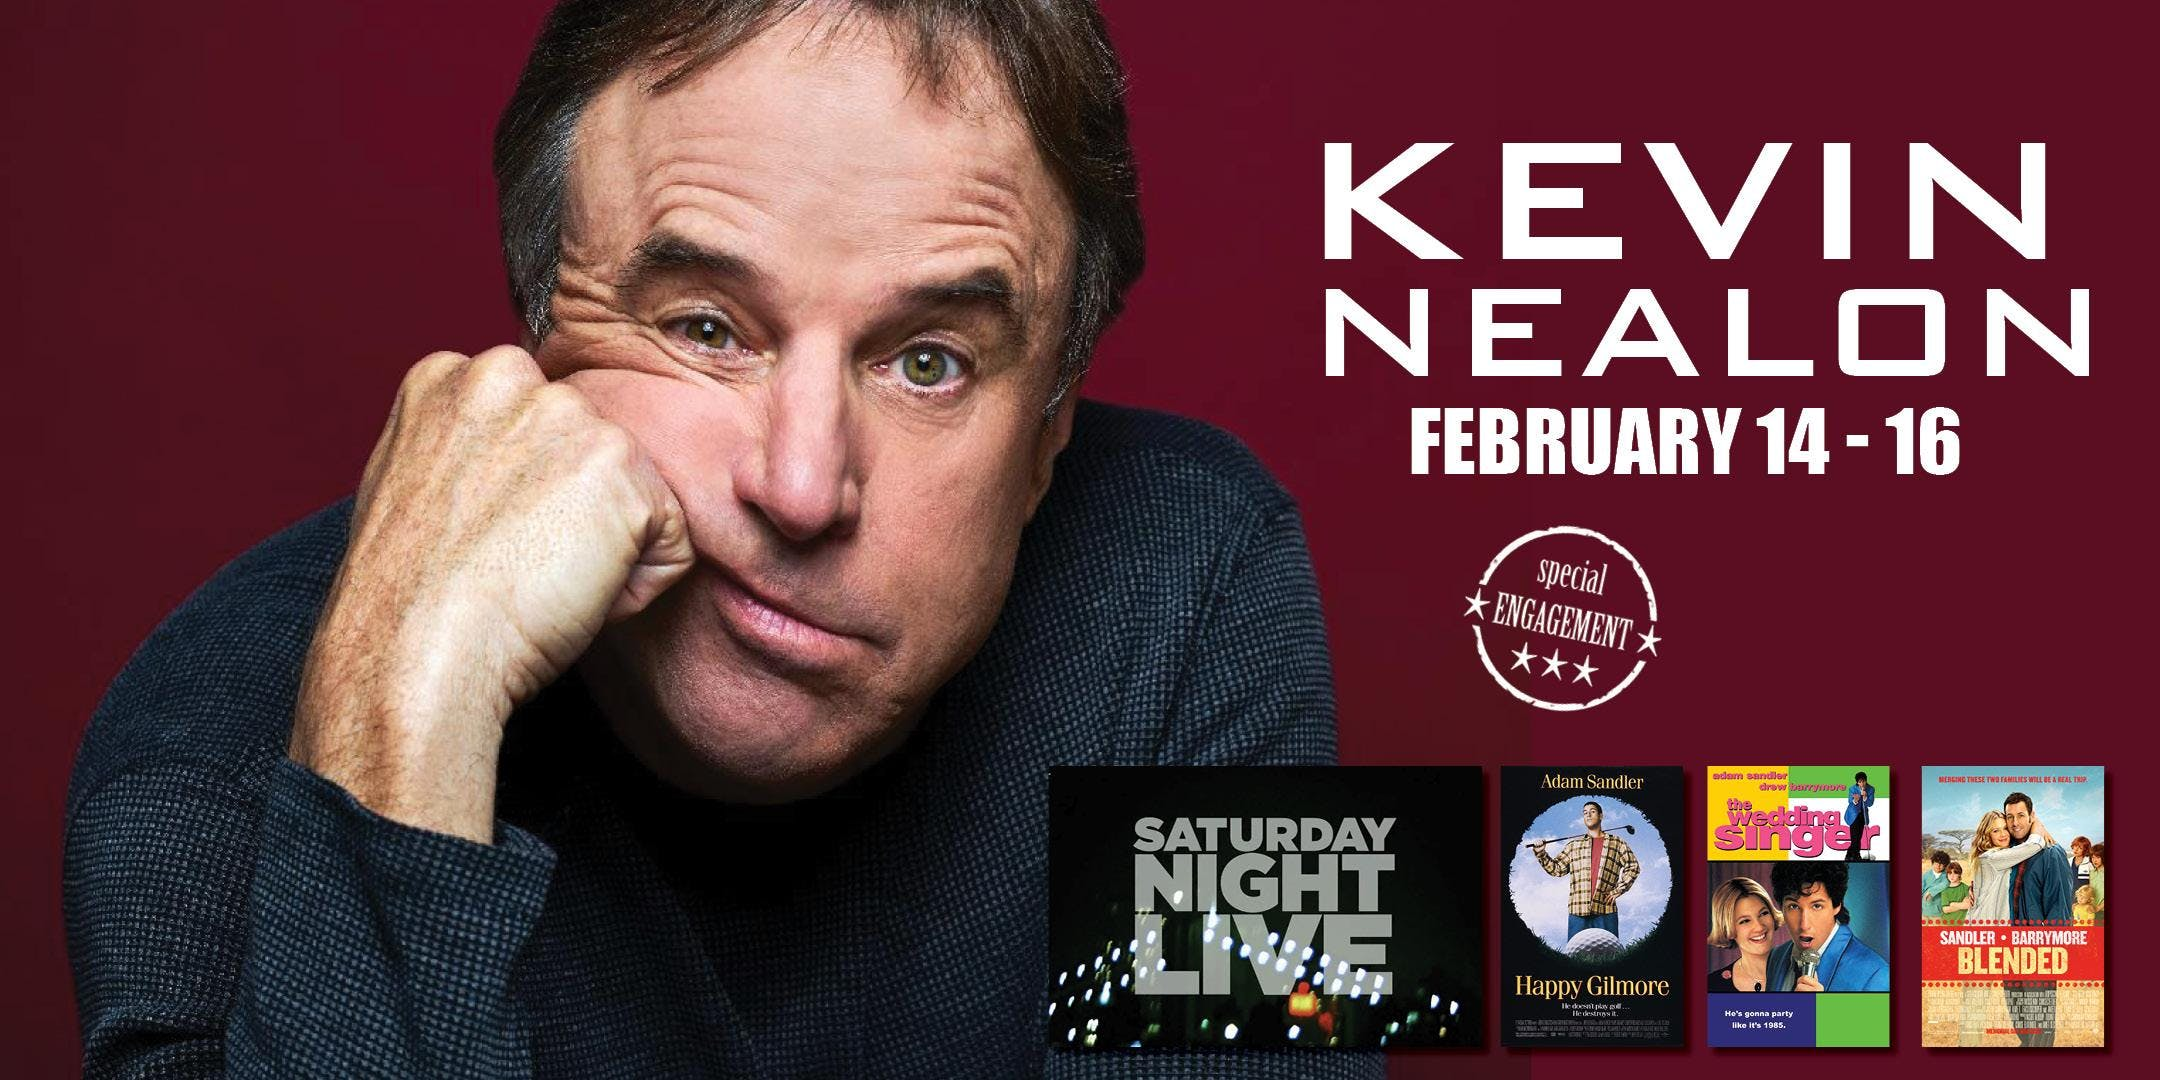 Comedian Kevin Nealon Comedy Tour live in Naples, Florida